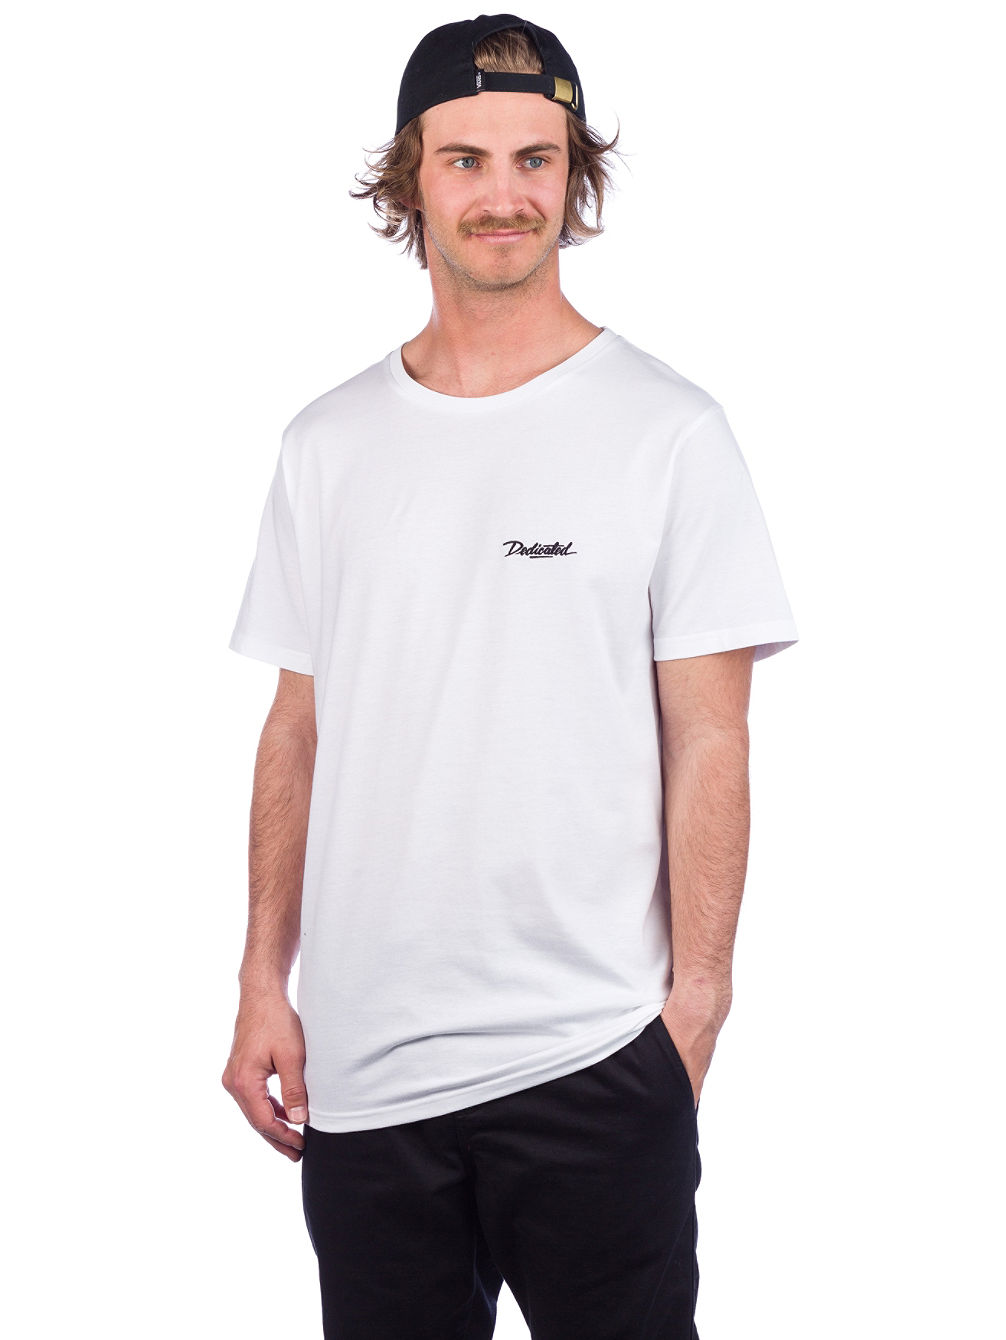 Stockholm Dedicated Script T-shirt